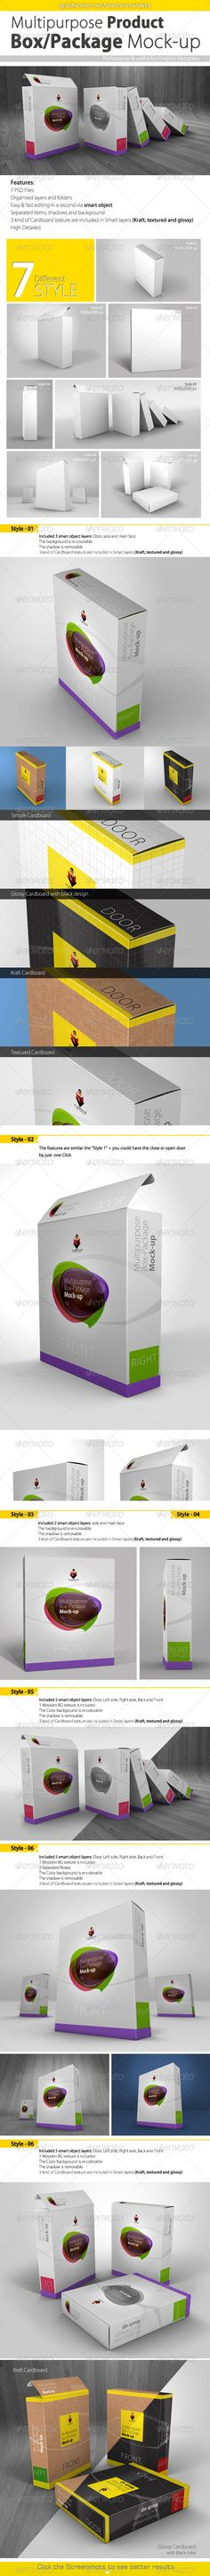 Multipurpose Product Box/Package Mock ups Create a realistic display for your packaging design in few seconds. this mock up suitable for lot of section like Softwares, with This scale.